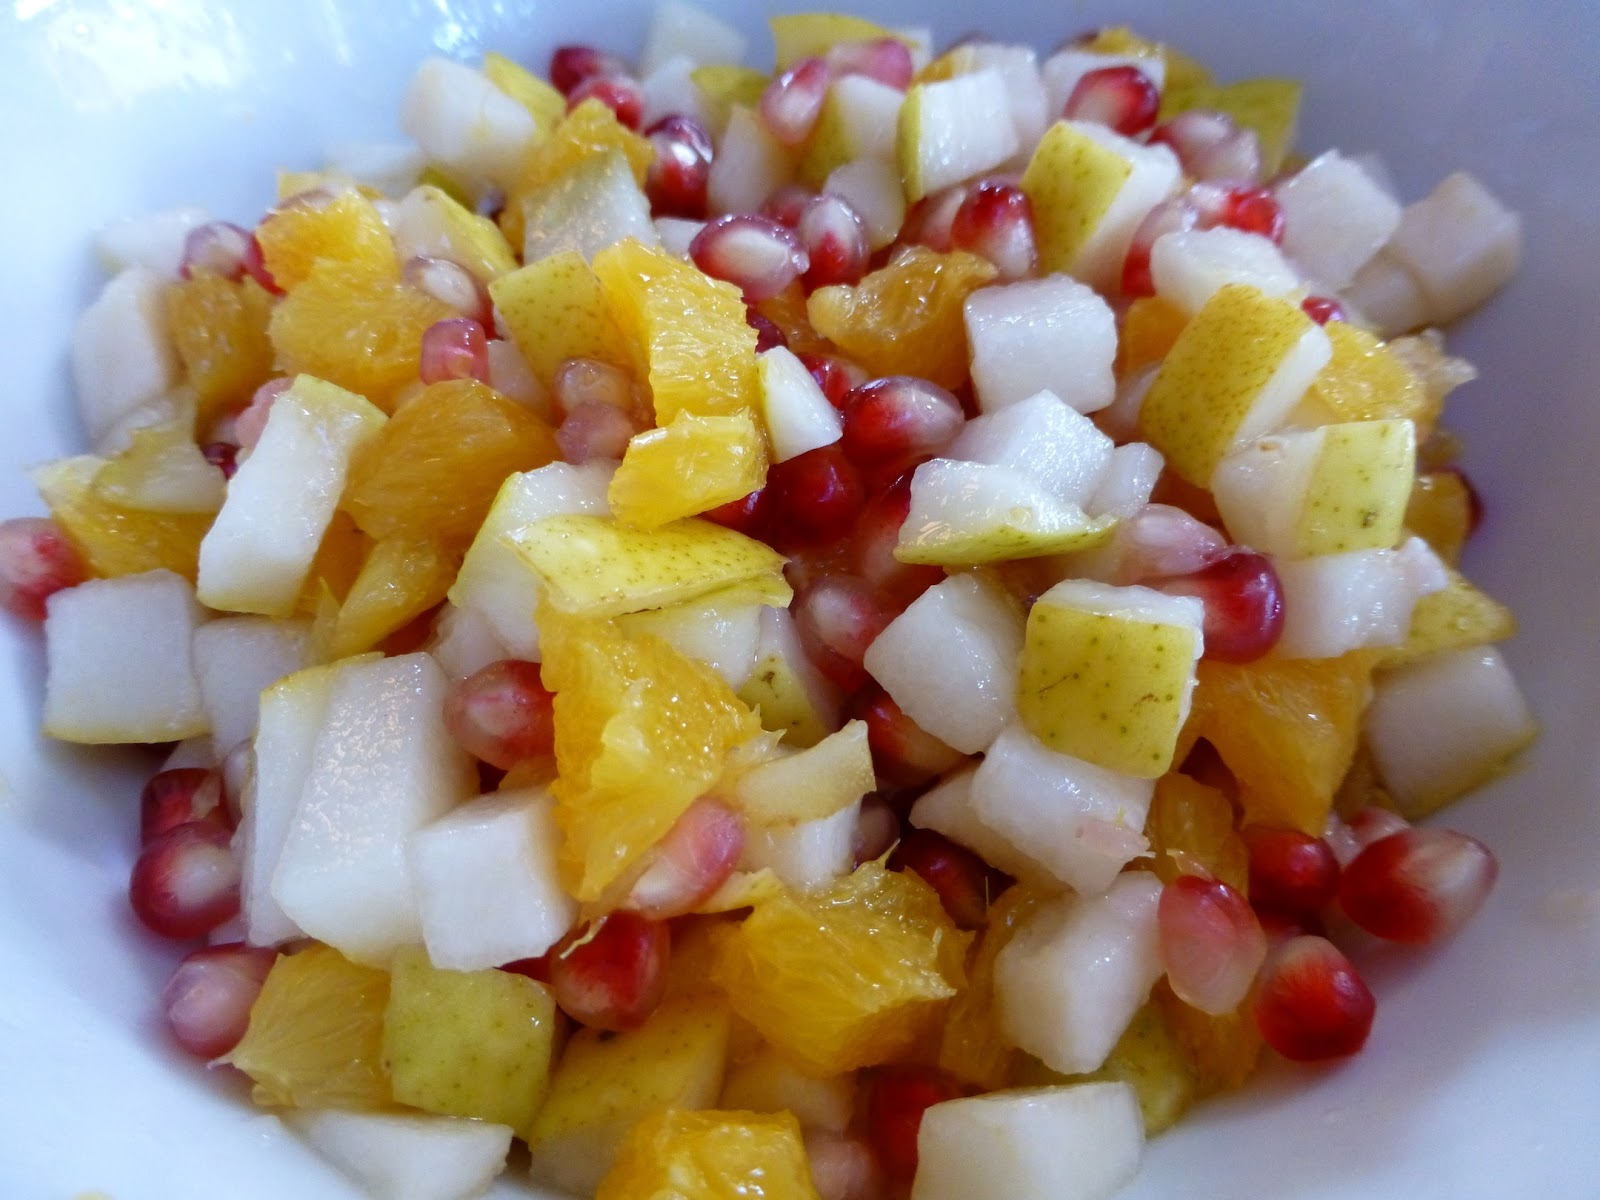 Pomegranate, Pear And Orange Salad - Raw Vegan And Gluten Free